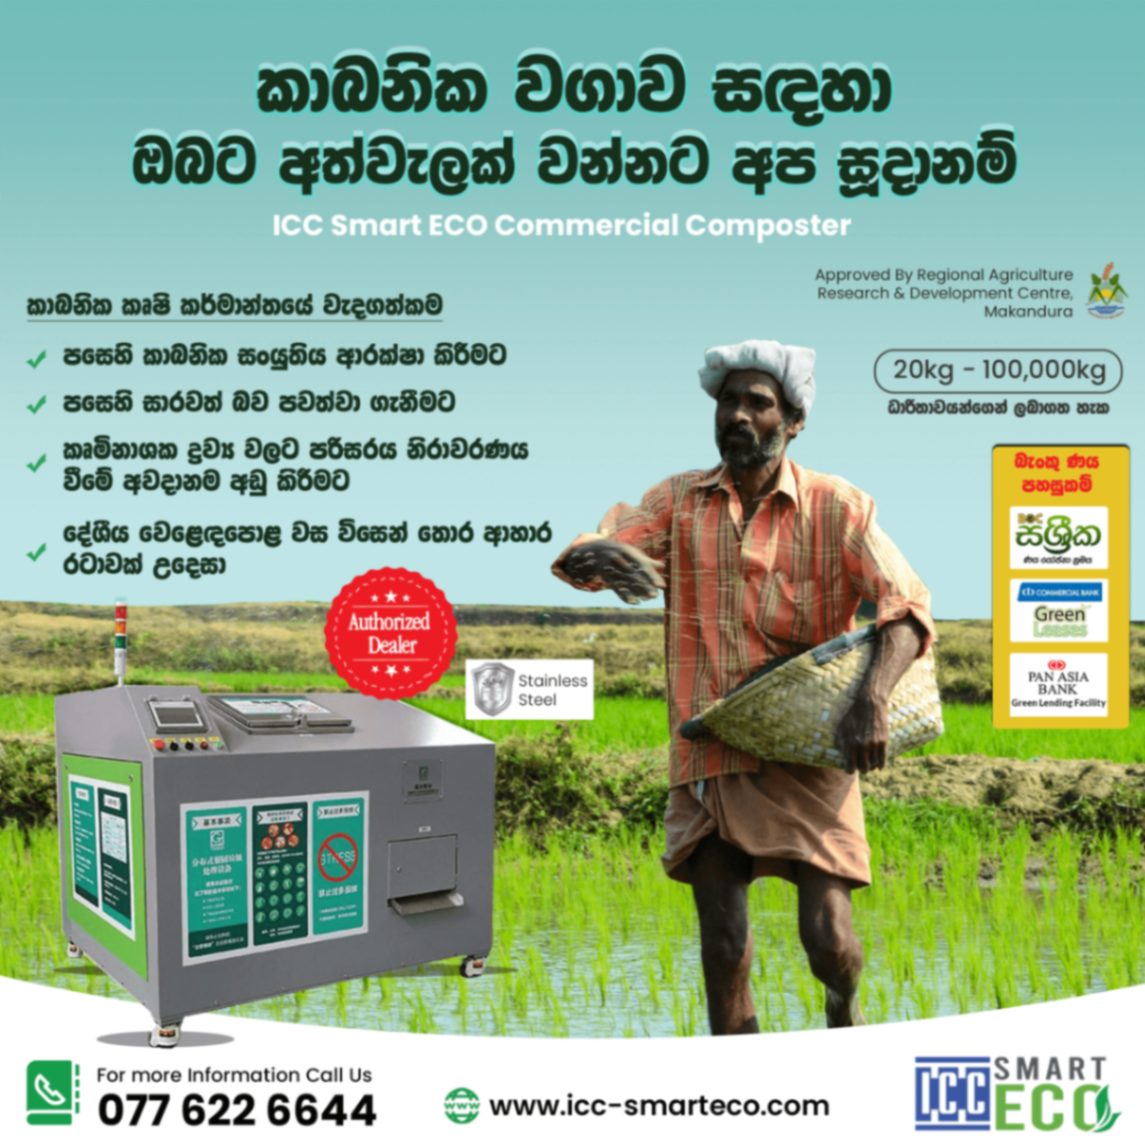 ICC Smart ECO commercial composters- From Organic Waste to a Soil Amendment (Compost) in just 8-24 hrs